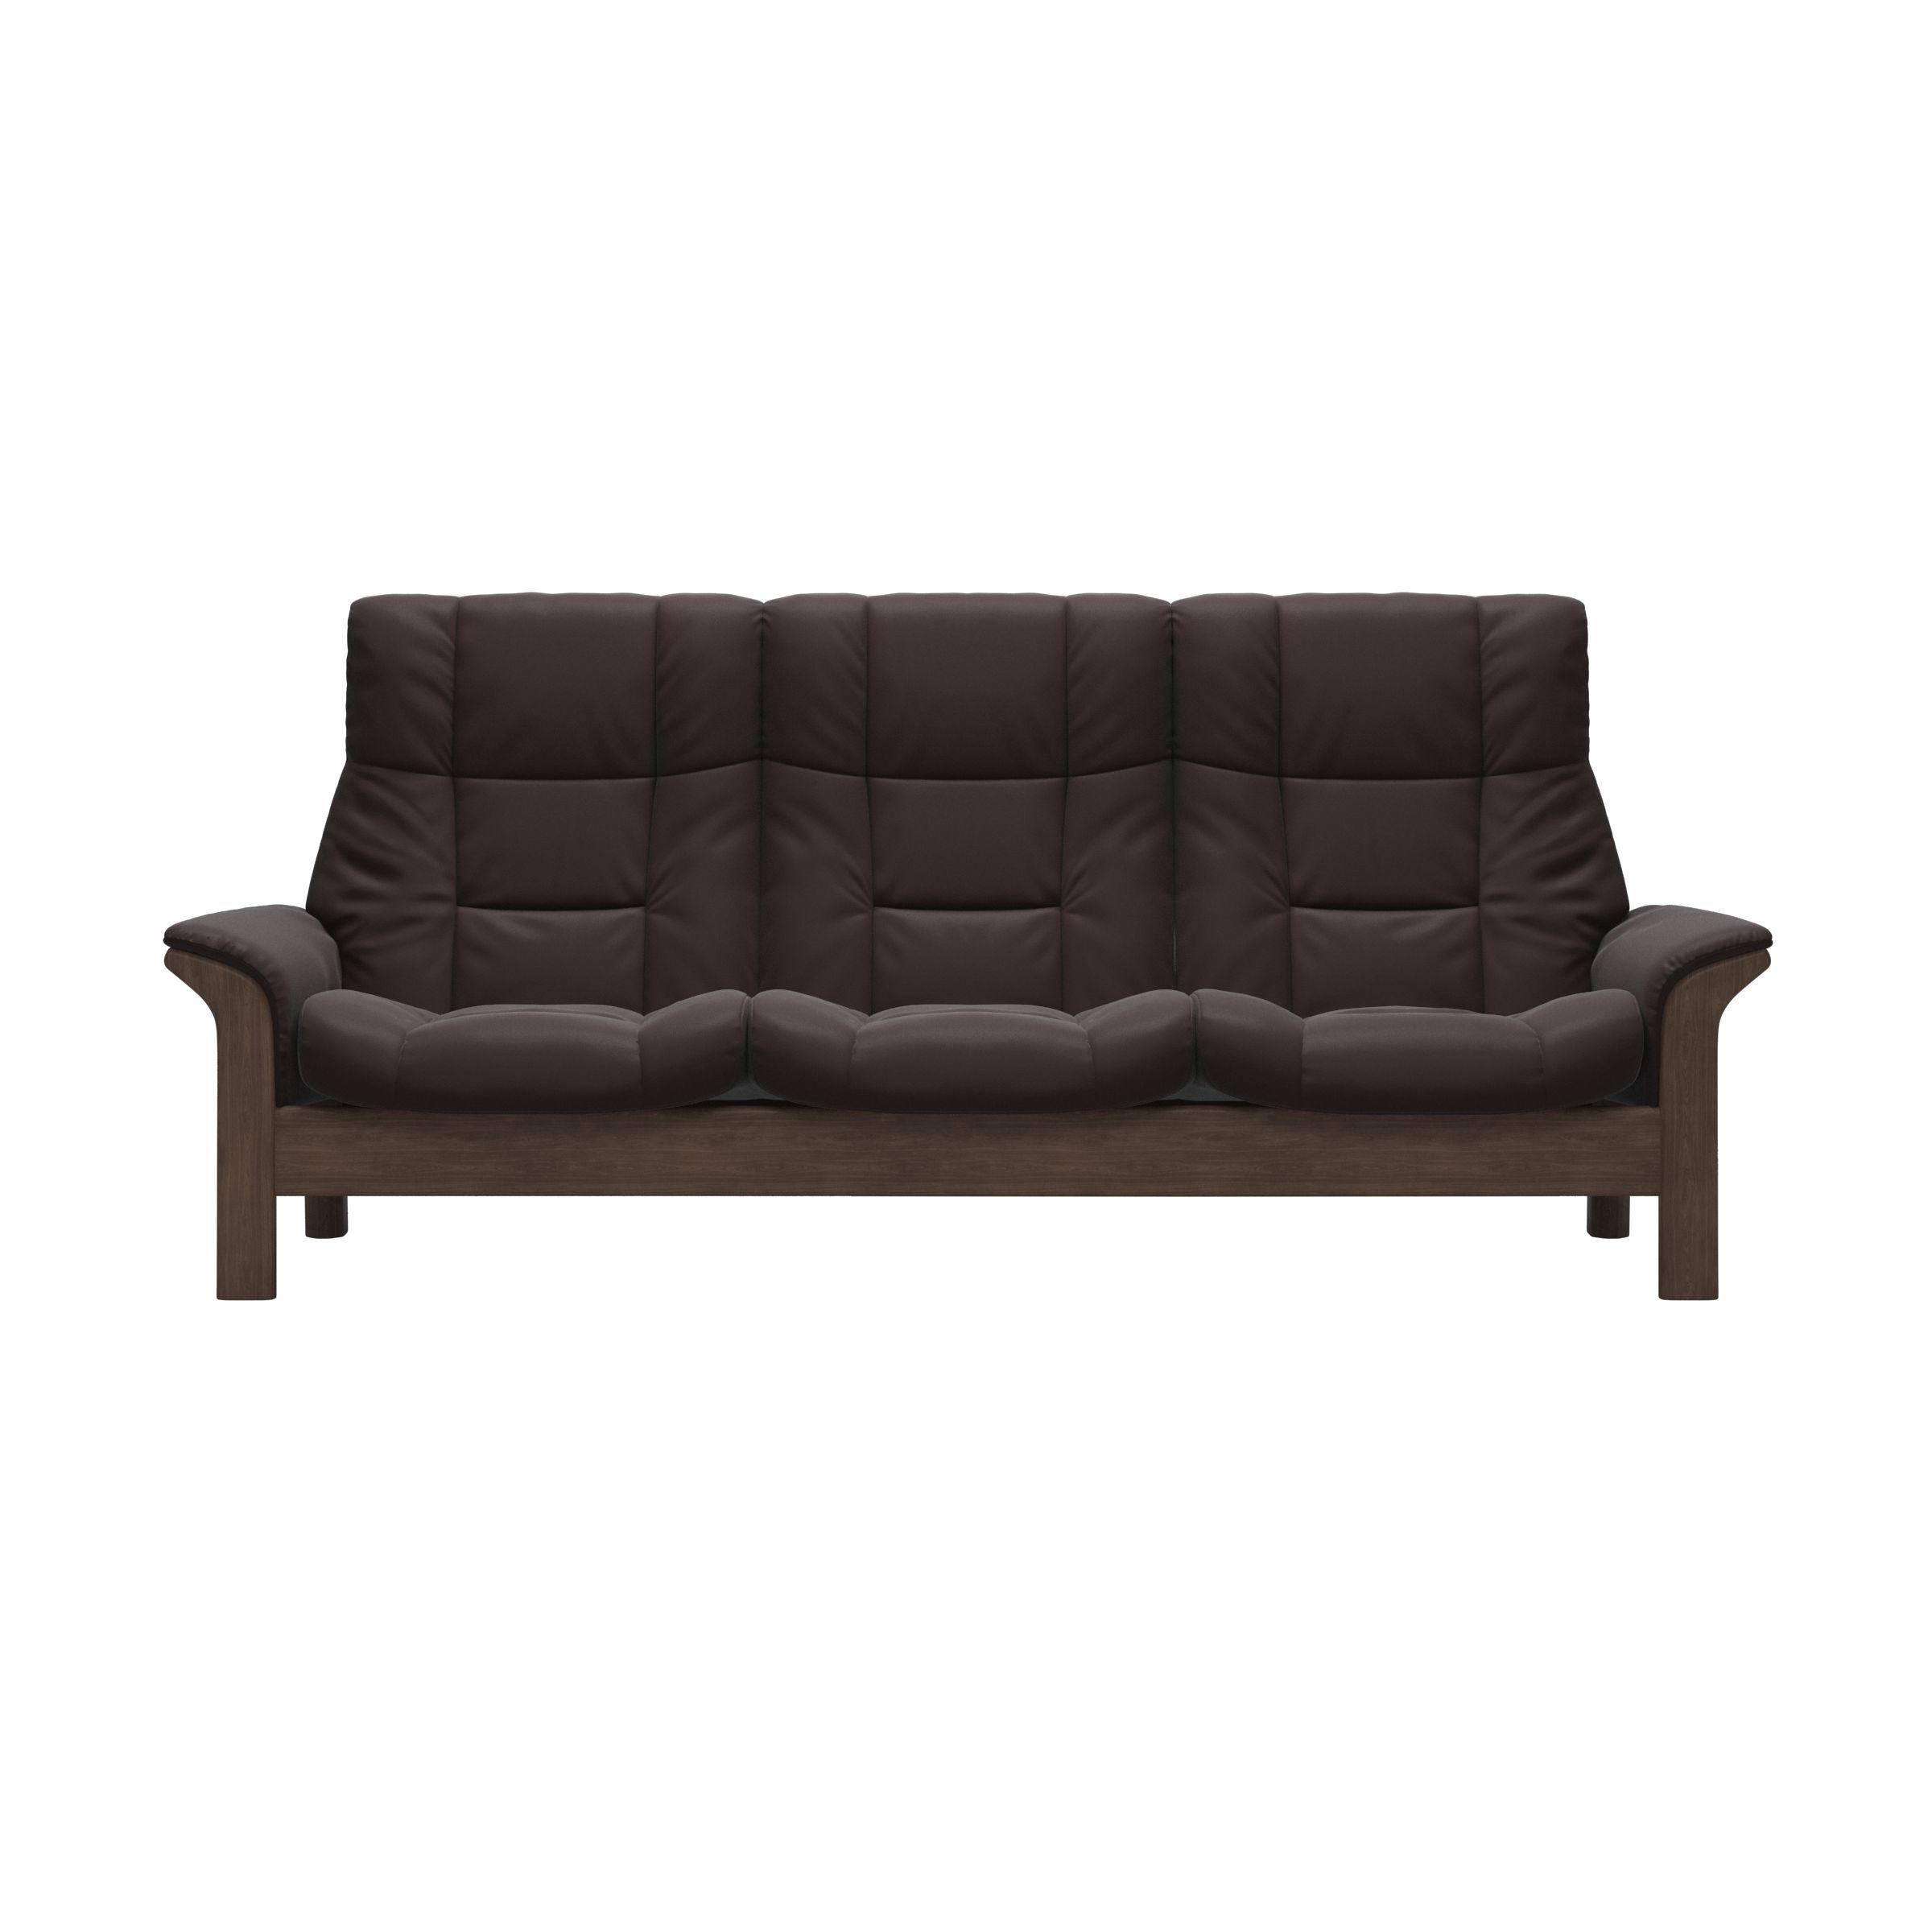 Stressless By EkornesStressless Buckingham Sofa High-Back